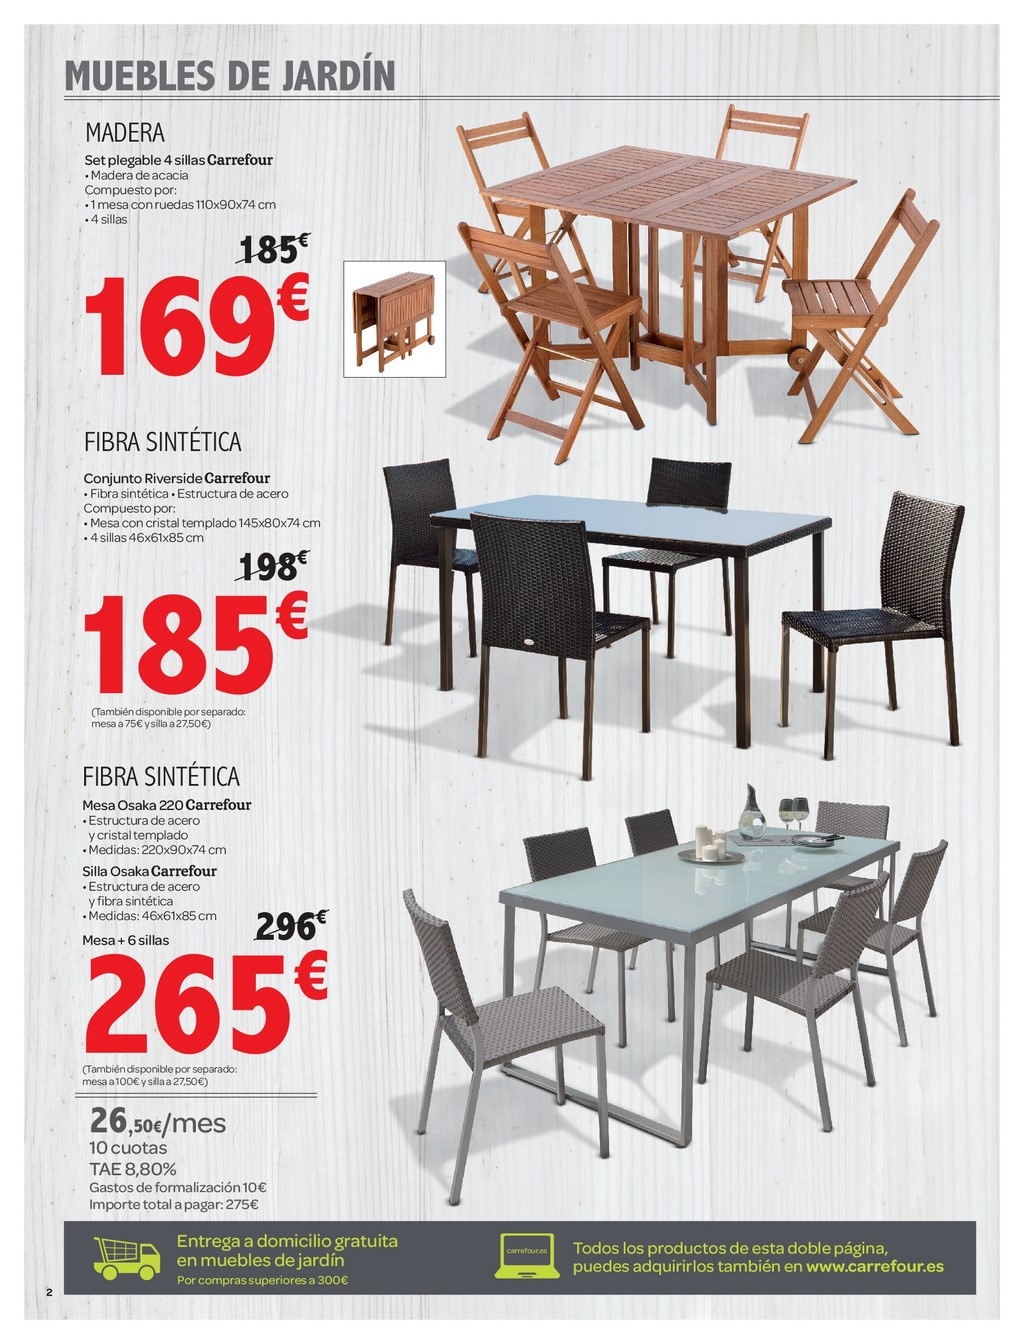 Muebles Jardin Carrefour 2016 Decorablog Revista De Decoración